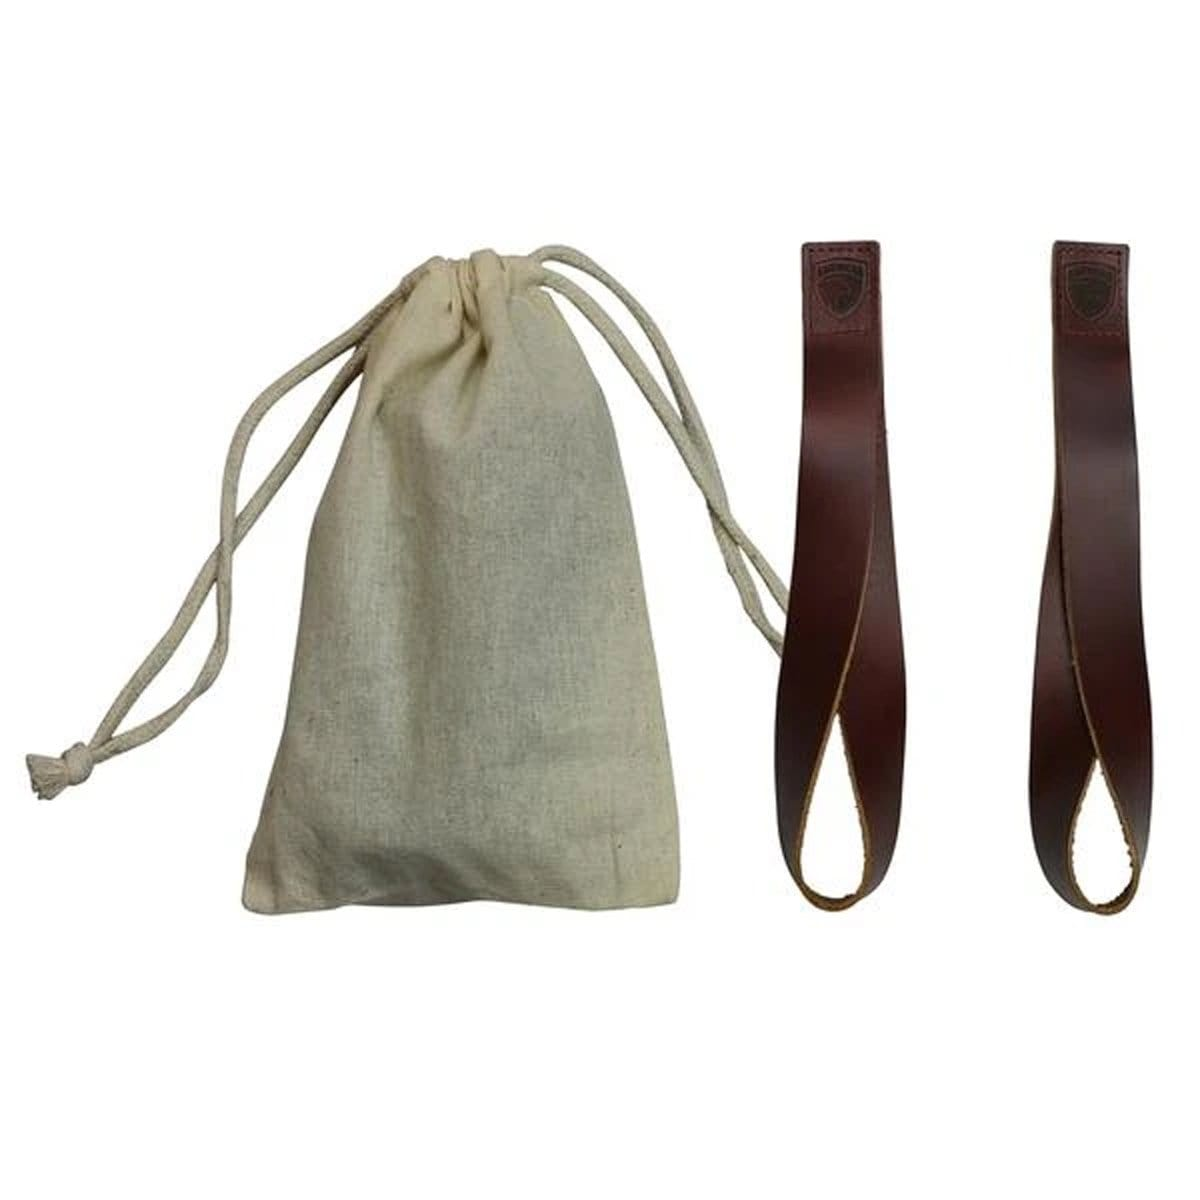 American Barbell Leather Lifting Tear Drop Loop Straps with Cloth Bag - 1 Pair - Barbell Flex